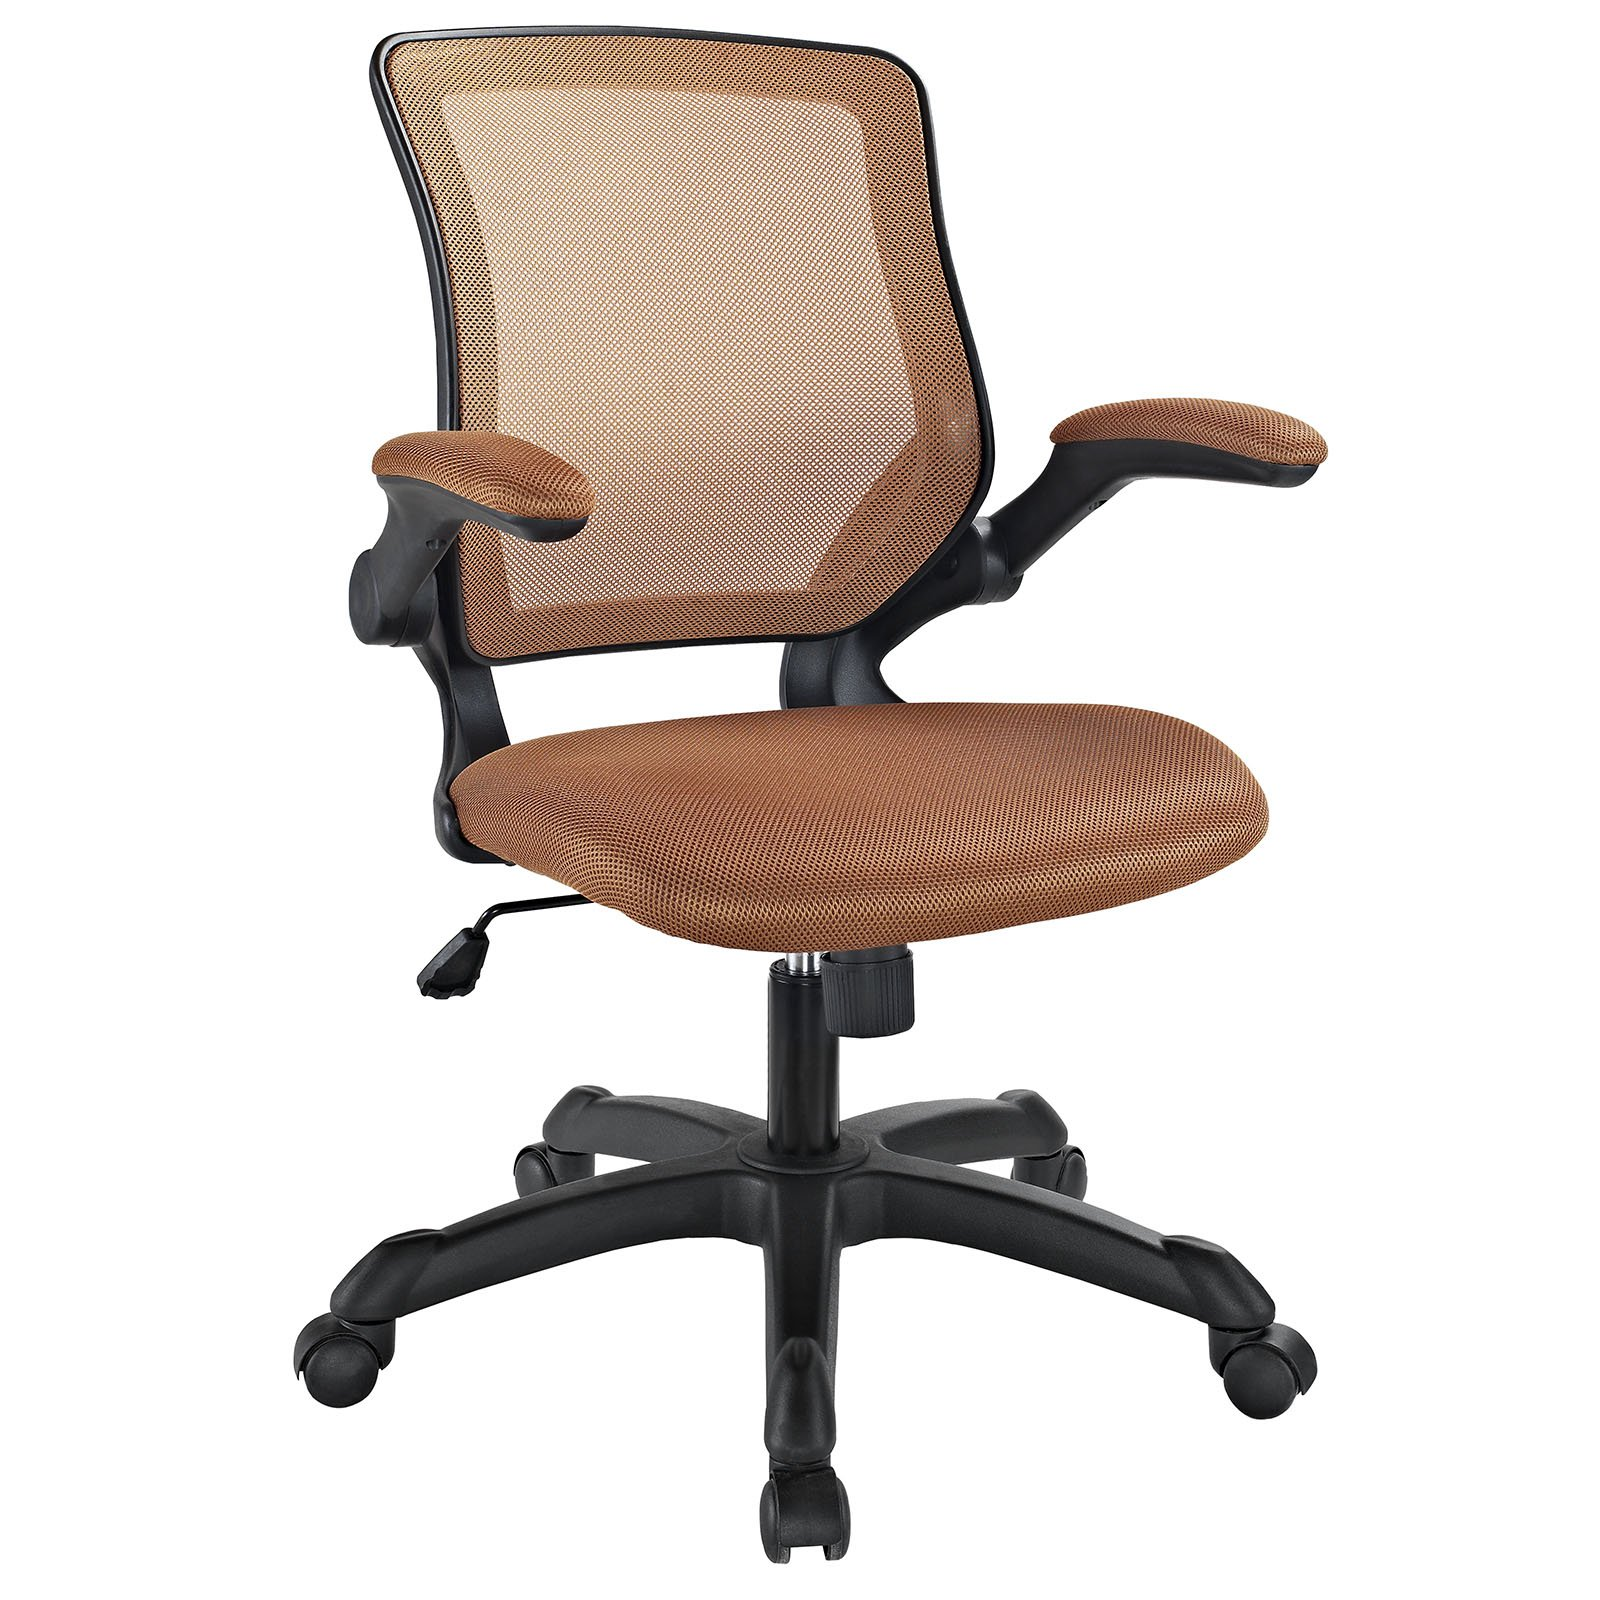 Modway Veer Mesh Office Chair in Tan